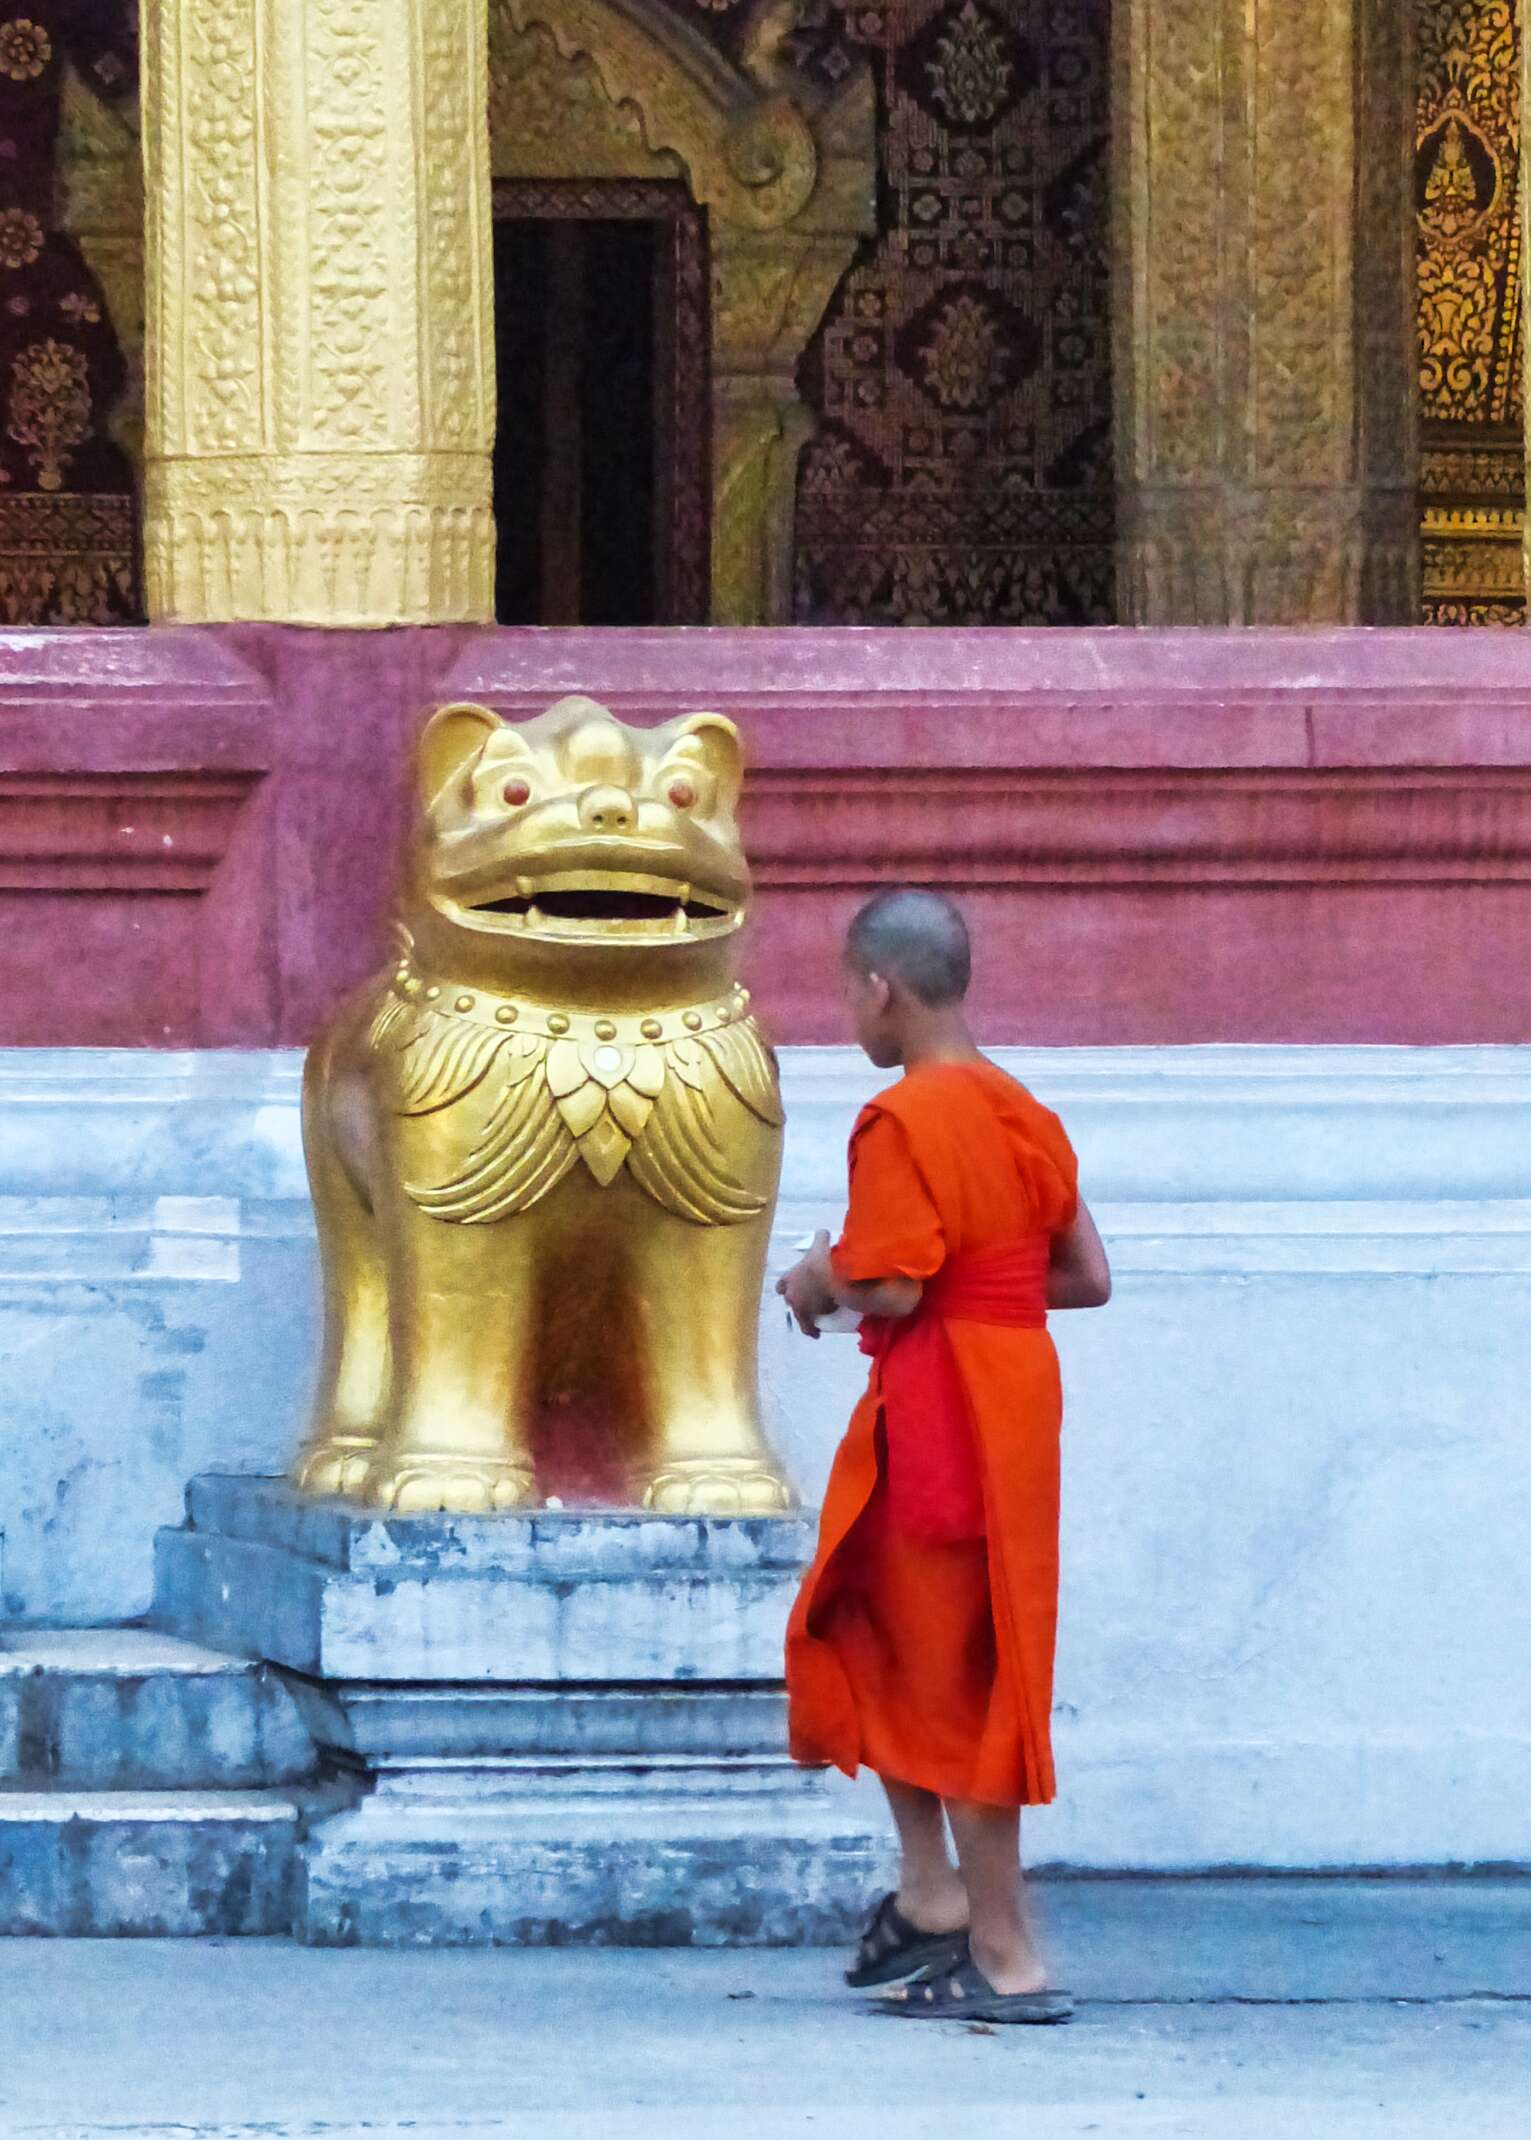 Young man in orange robes in front of a gold lion statue